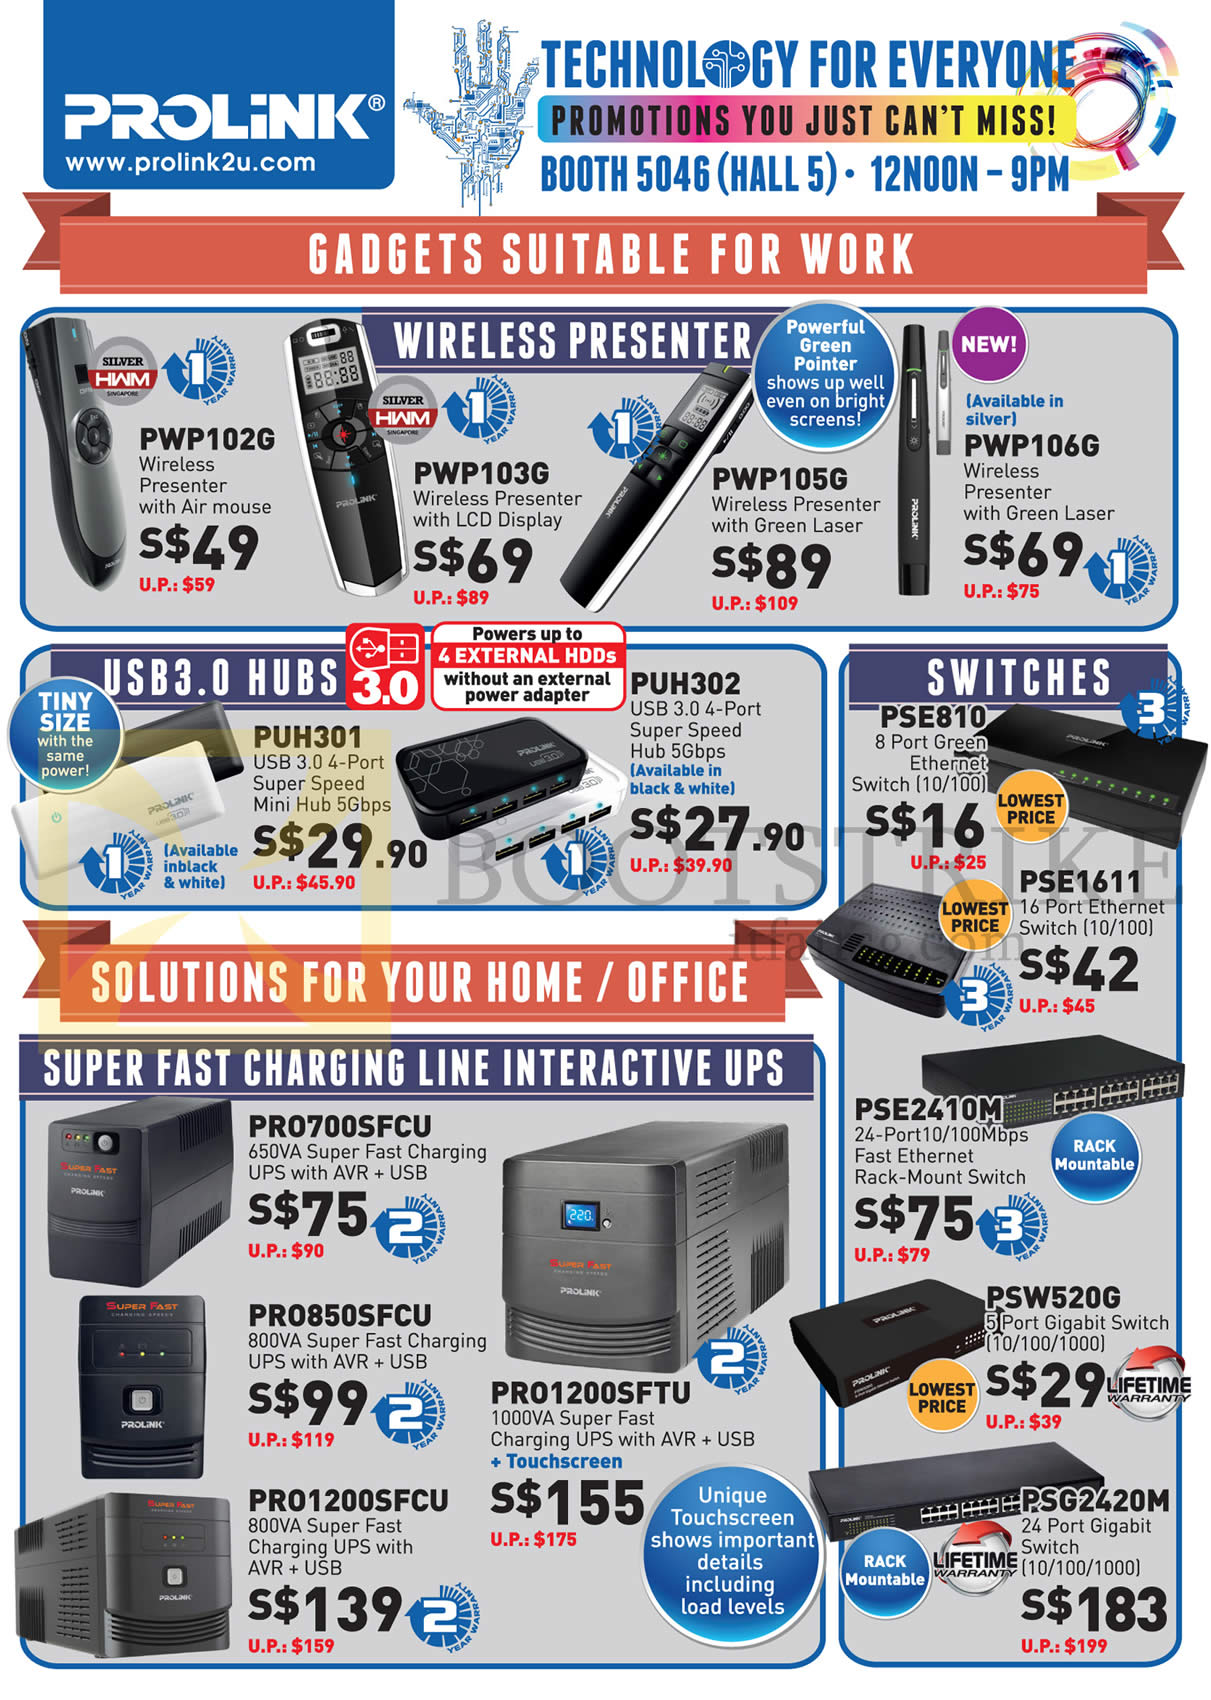 PC SHOW 2015 price list image brochure of Prolink Wireless Presenter, USB3.0 Hubs, Switches, UPS, PWP102G, PWP103G, PWP105G, PUH302, PUH301, PRO700SFCU